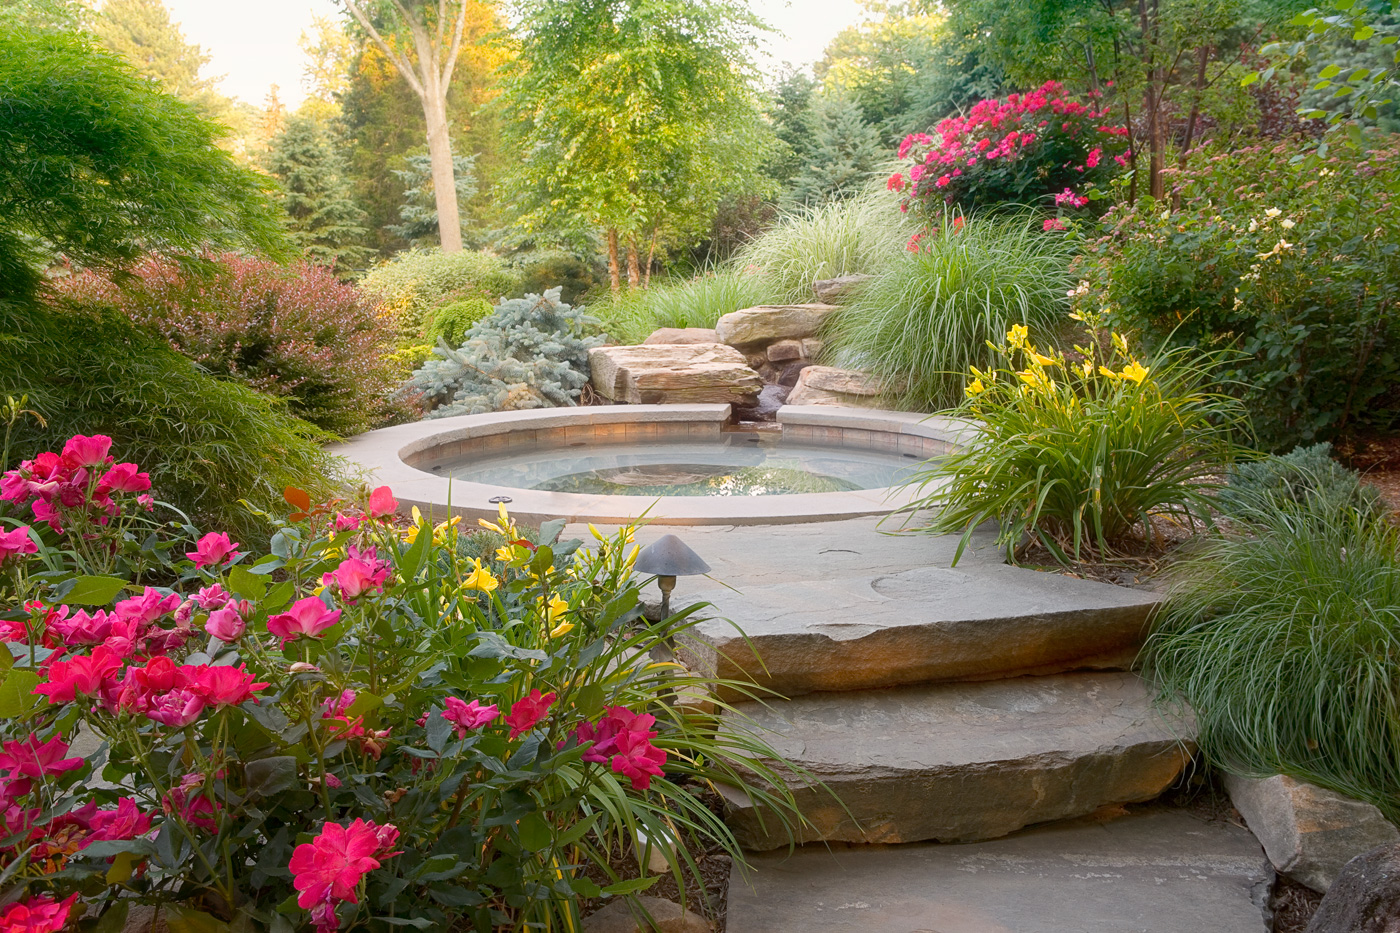 Landscape design native home garden design for Garden design ideas photos